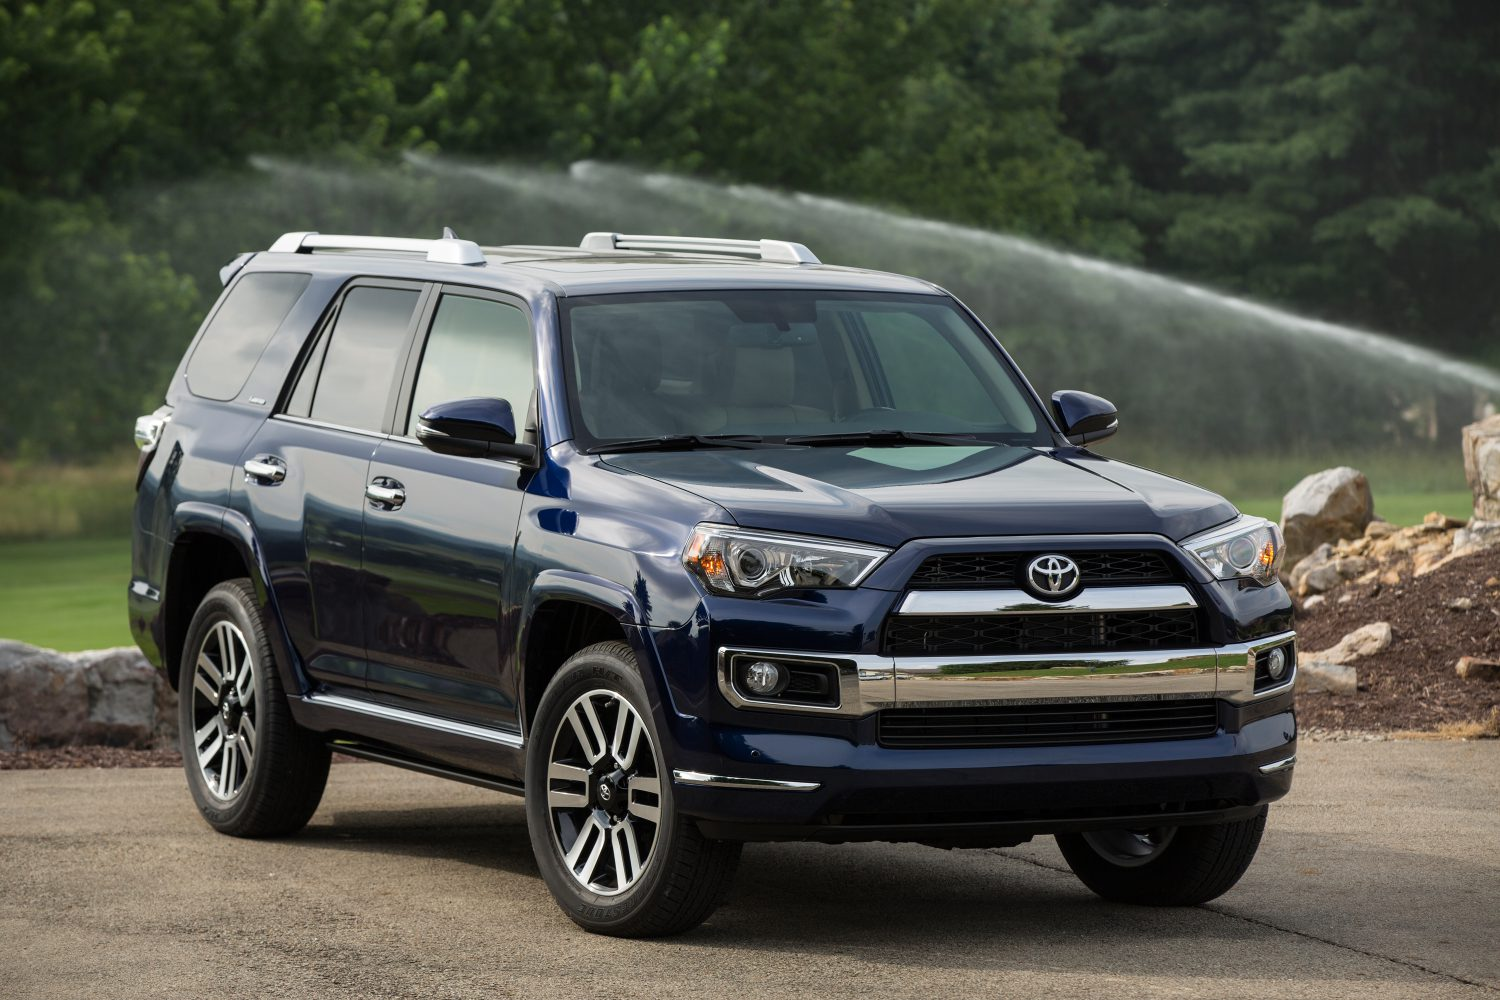 2018 Toyota 4Runner – New Info: It Will Not Receive Big Changes >> Multi Tool On Wheels 2017 Toyota 4runner Is The Everyday